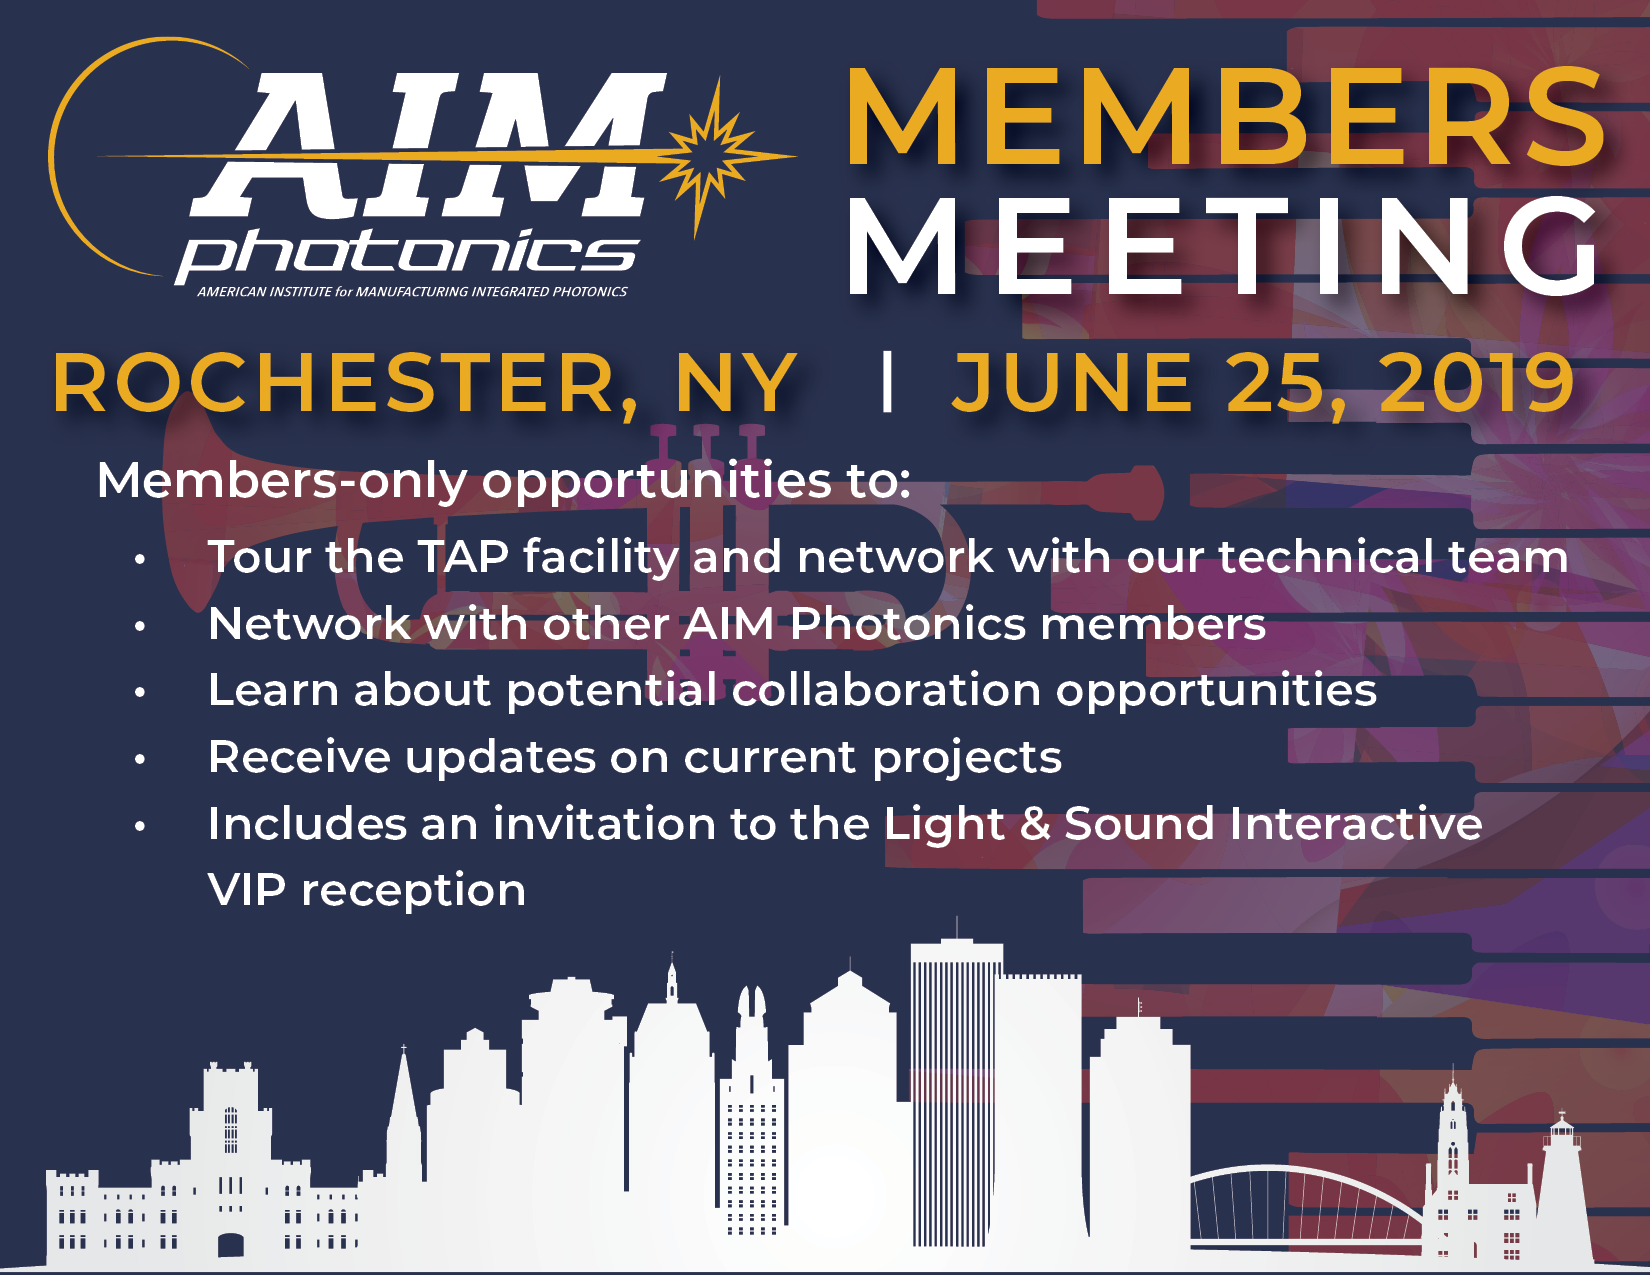 Meeting includes tour of AIM's Test, Assembly, and Packaging (TAP) Facility, followed by VIP reception. Receive updates from Keynote Lockheed Martin, and participate in Workshop on Small Business Innovation Research (     SBIR     ) program funding opportunities.